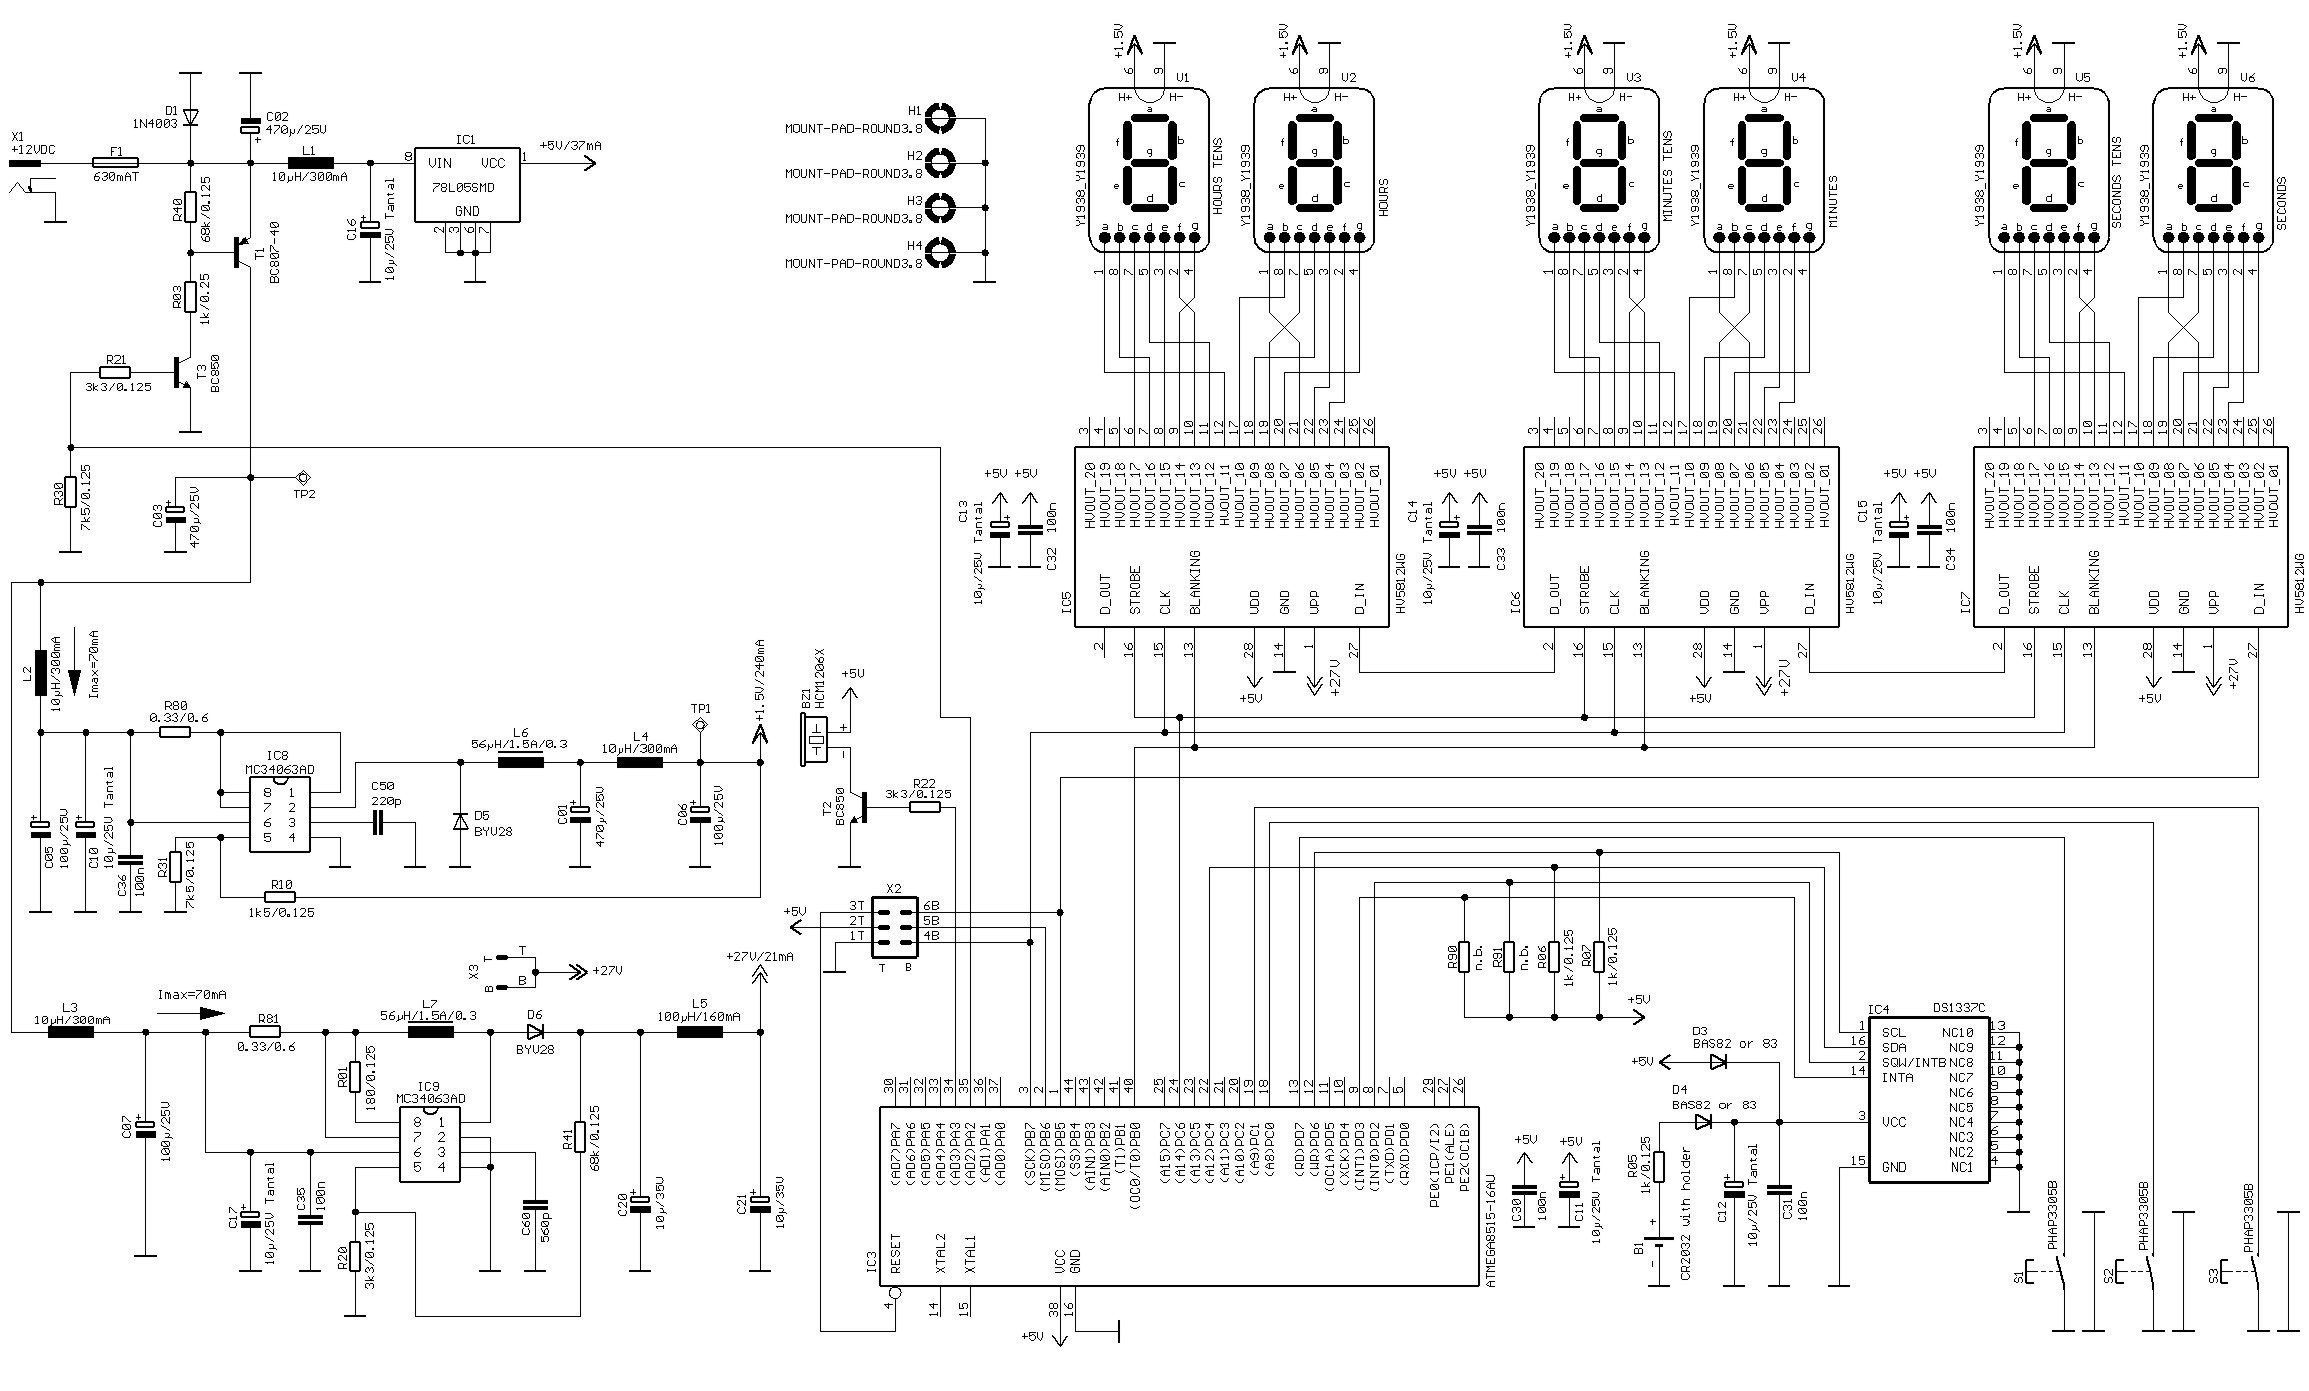 Danfoss Vfd Wiring Diagram - All Wiring Diagram on